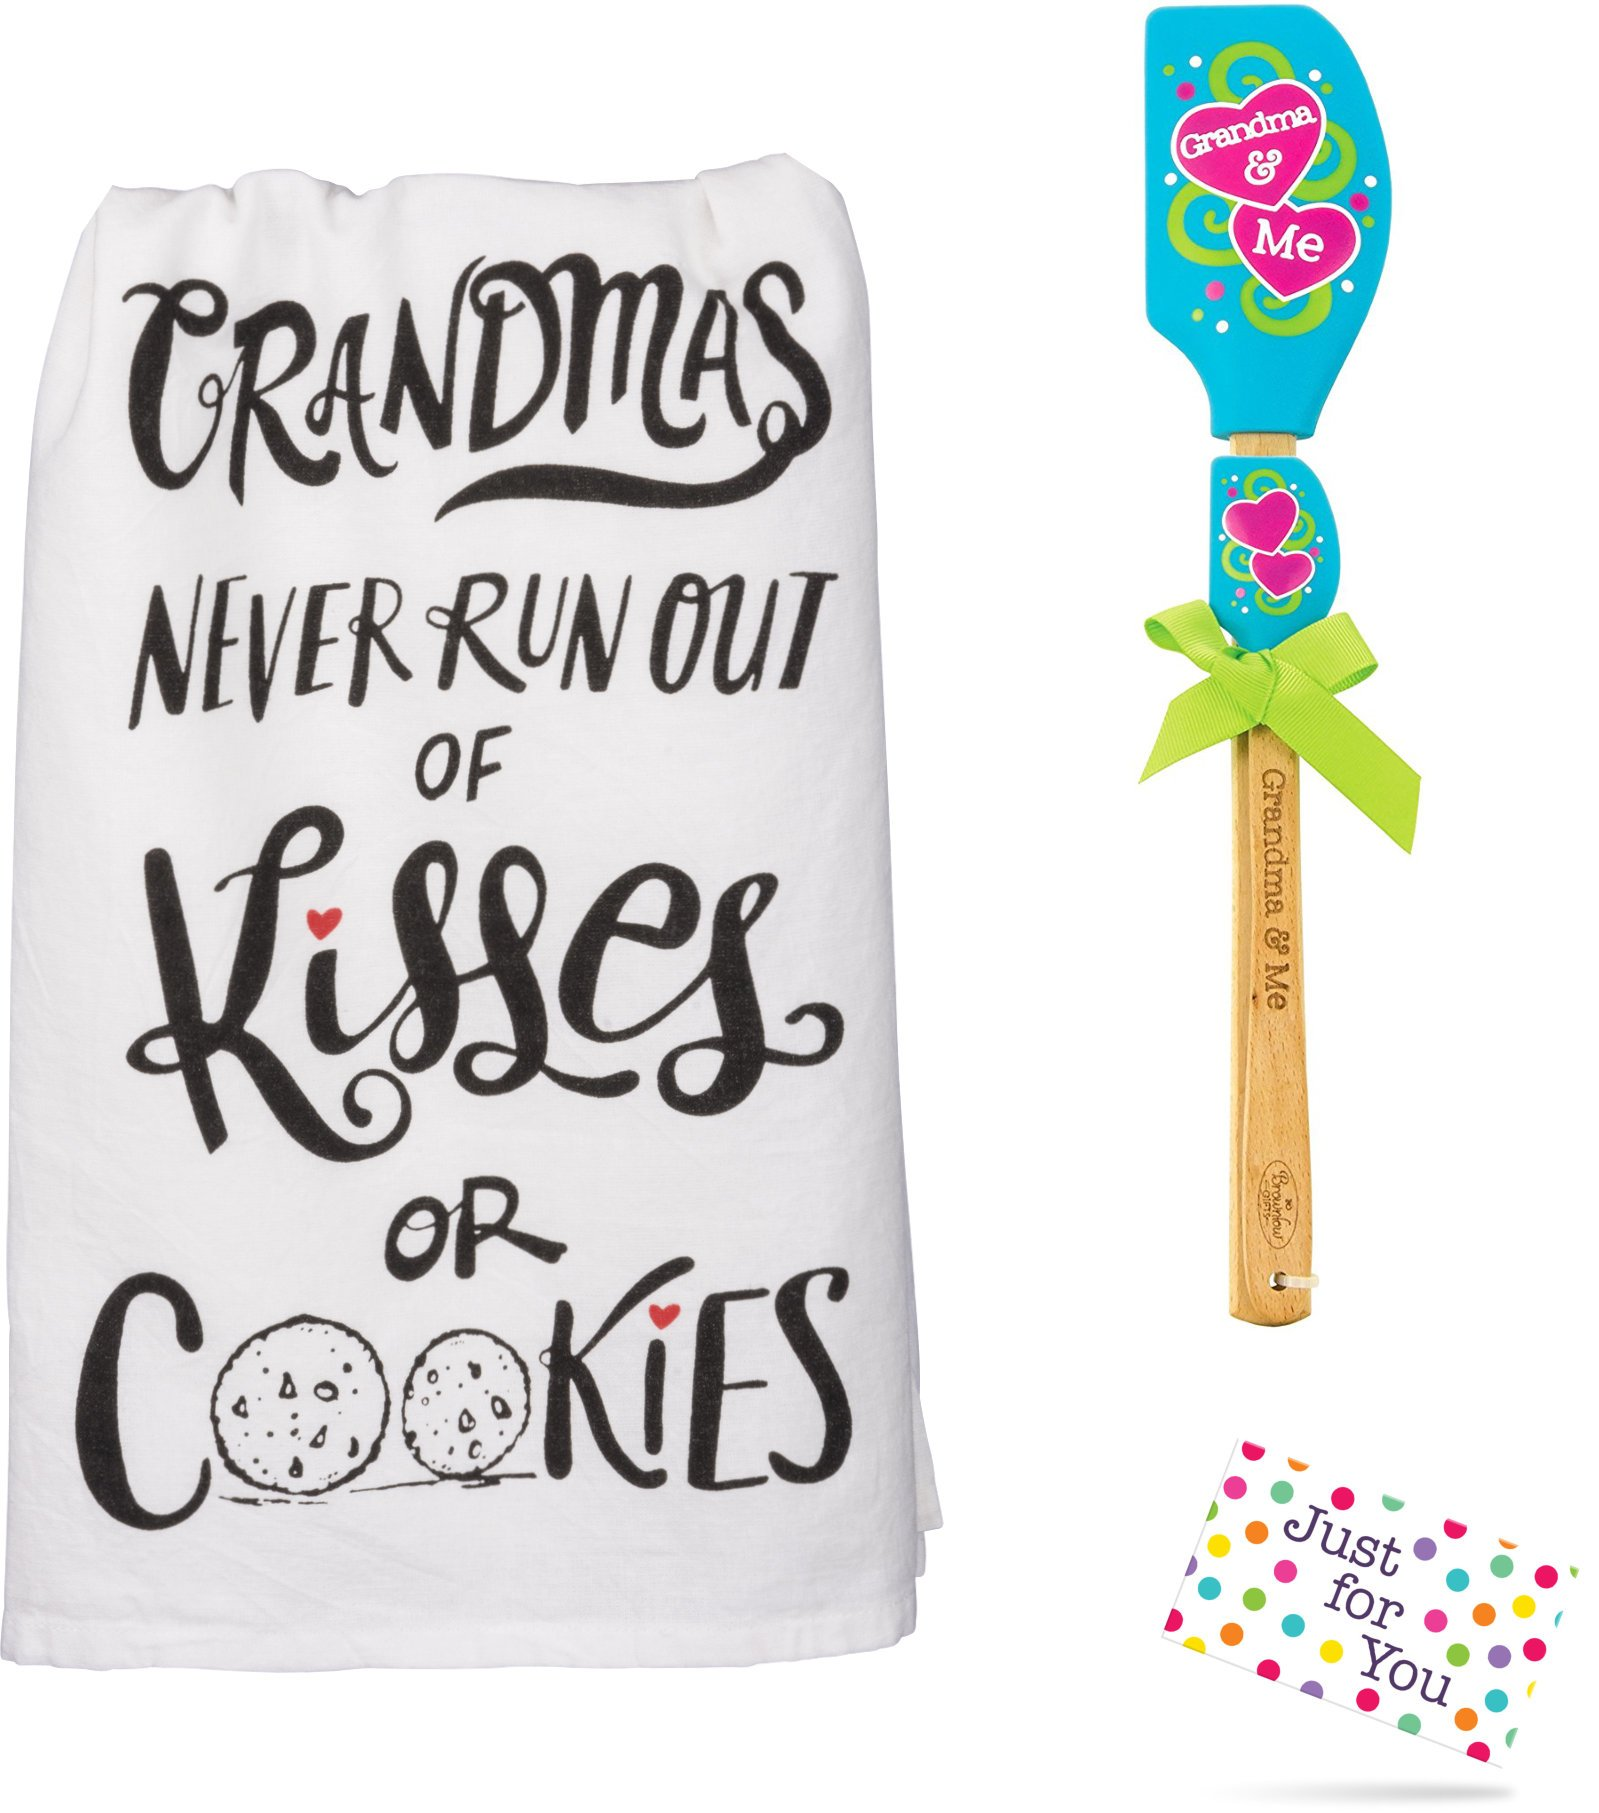 Just 4 U Gifts Grandma Grandchild Kitchen Set - Grandmas Never Run Out of Kisses or Cookies Towel and Blue Hearts Spatula Set with Gift Tag by Just 4 U Gifts (Image #3)